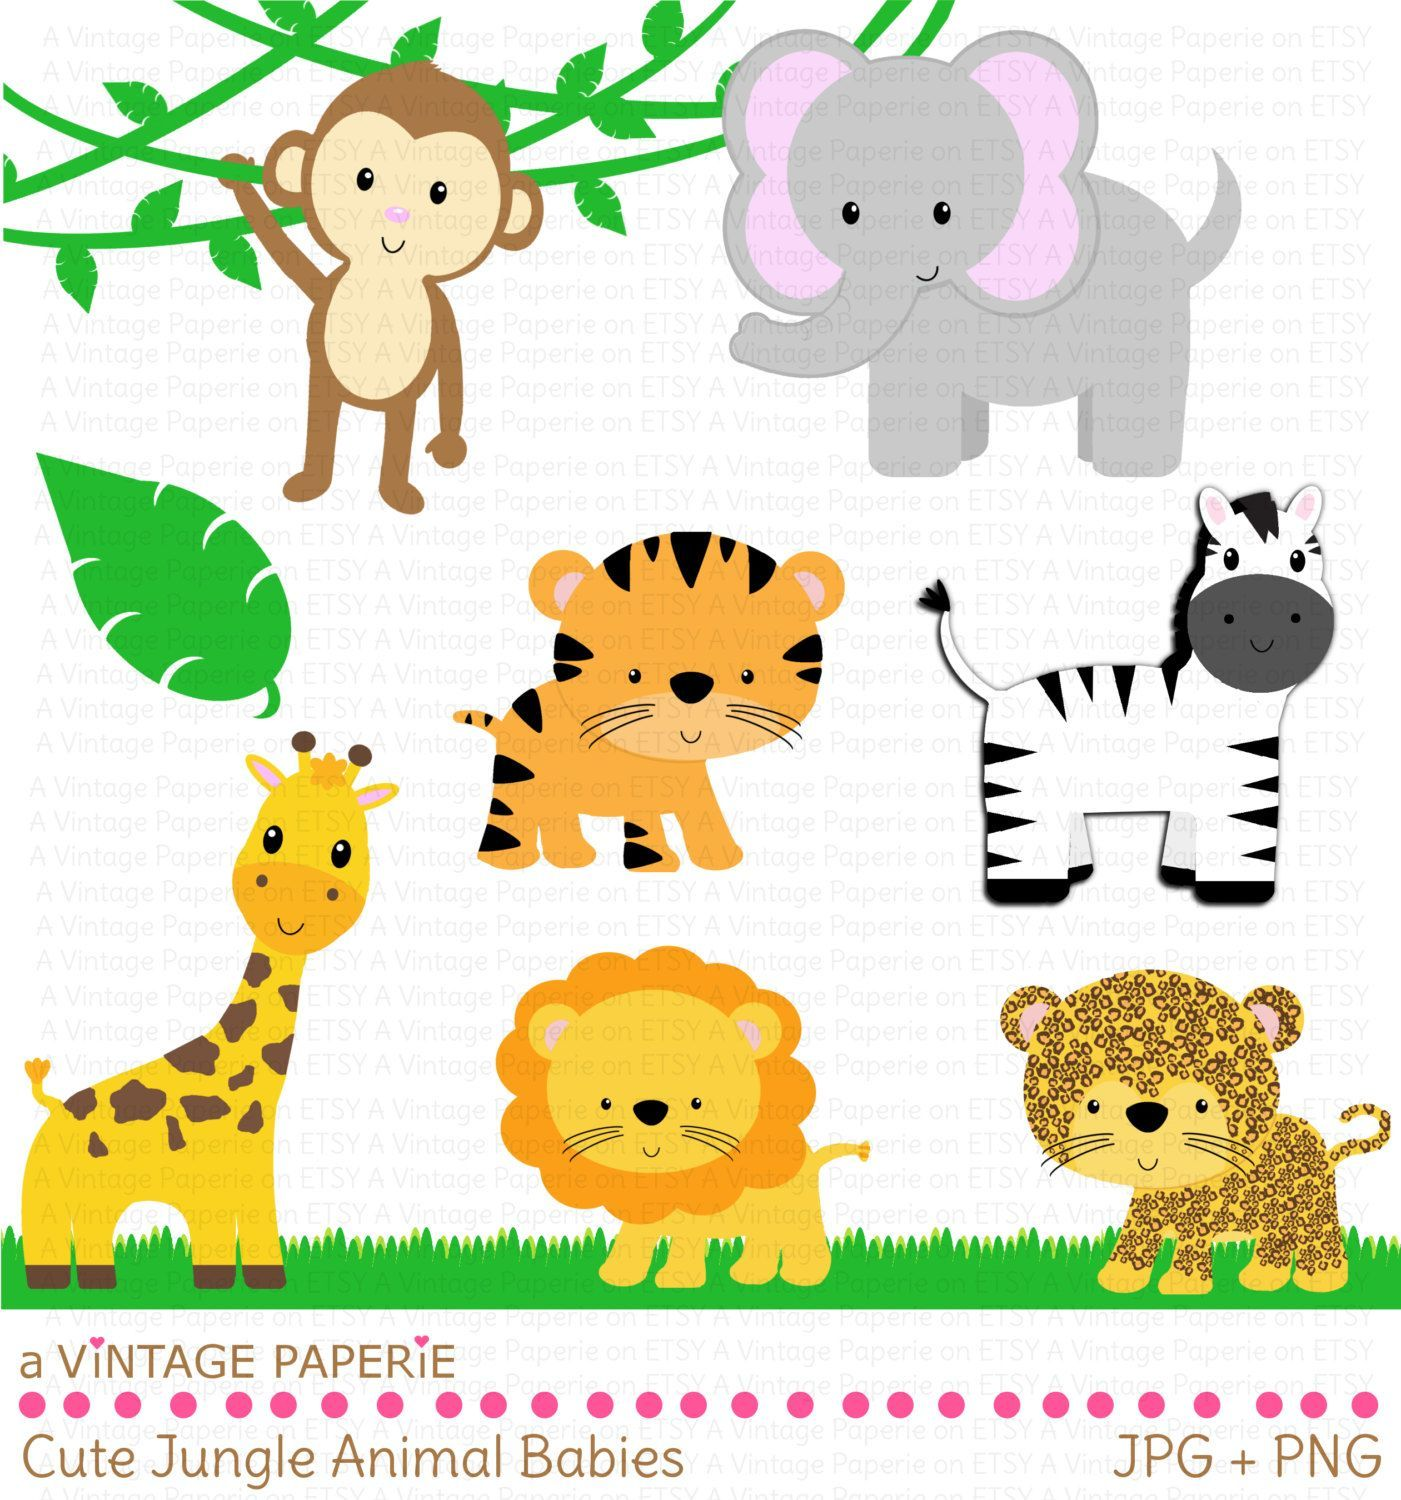 Free printable baby jungle animal clipart 4 » Clipart Portal.